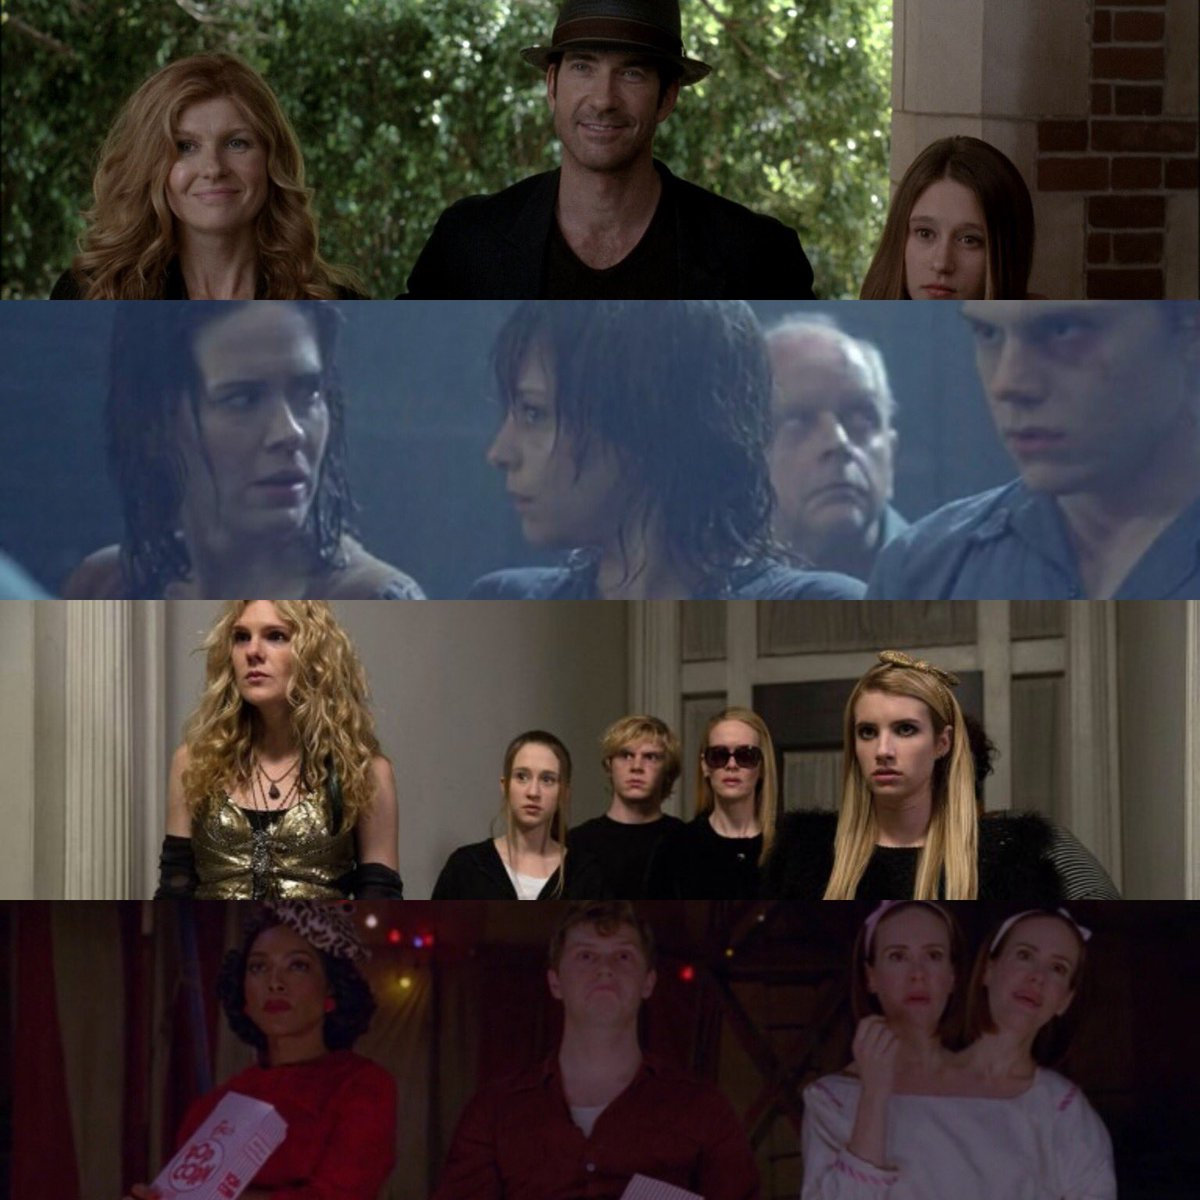 RT @_AHSCentral: Which out of the 8 Seasons had your favorite characters? #AHS https://t.co/XRLahvoogL